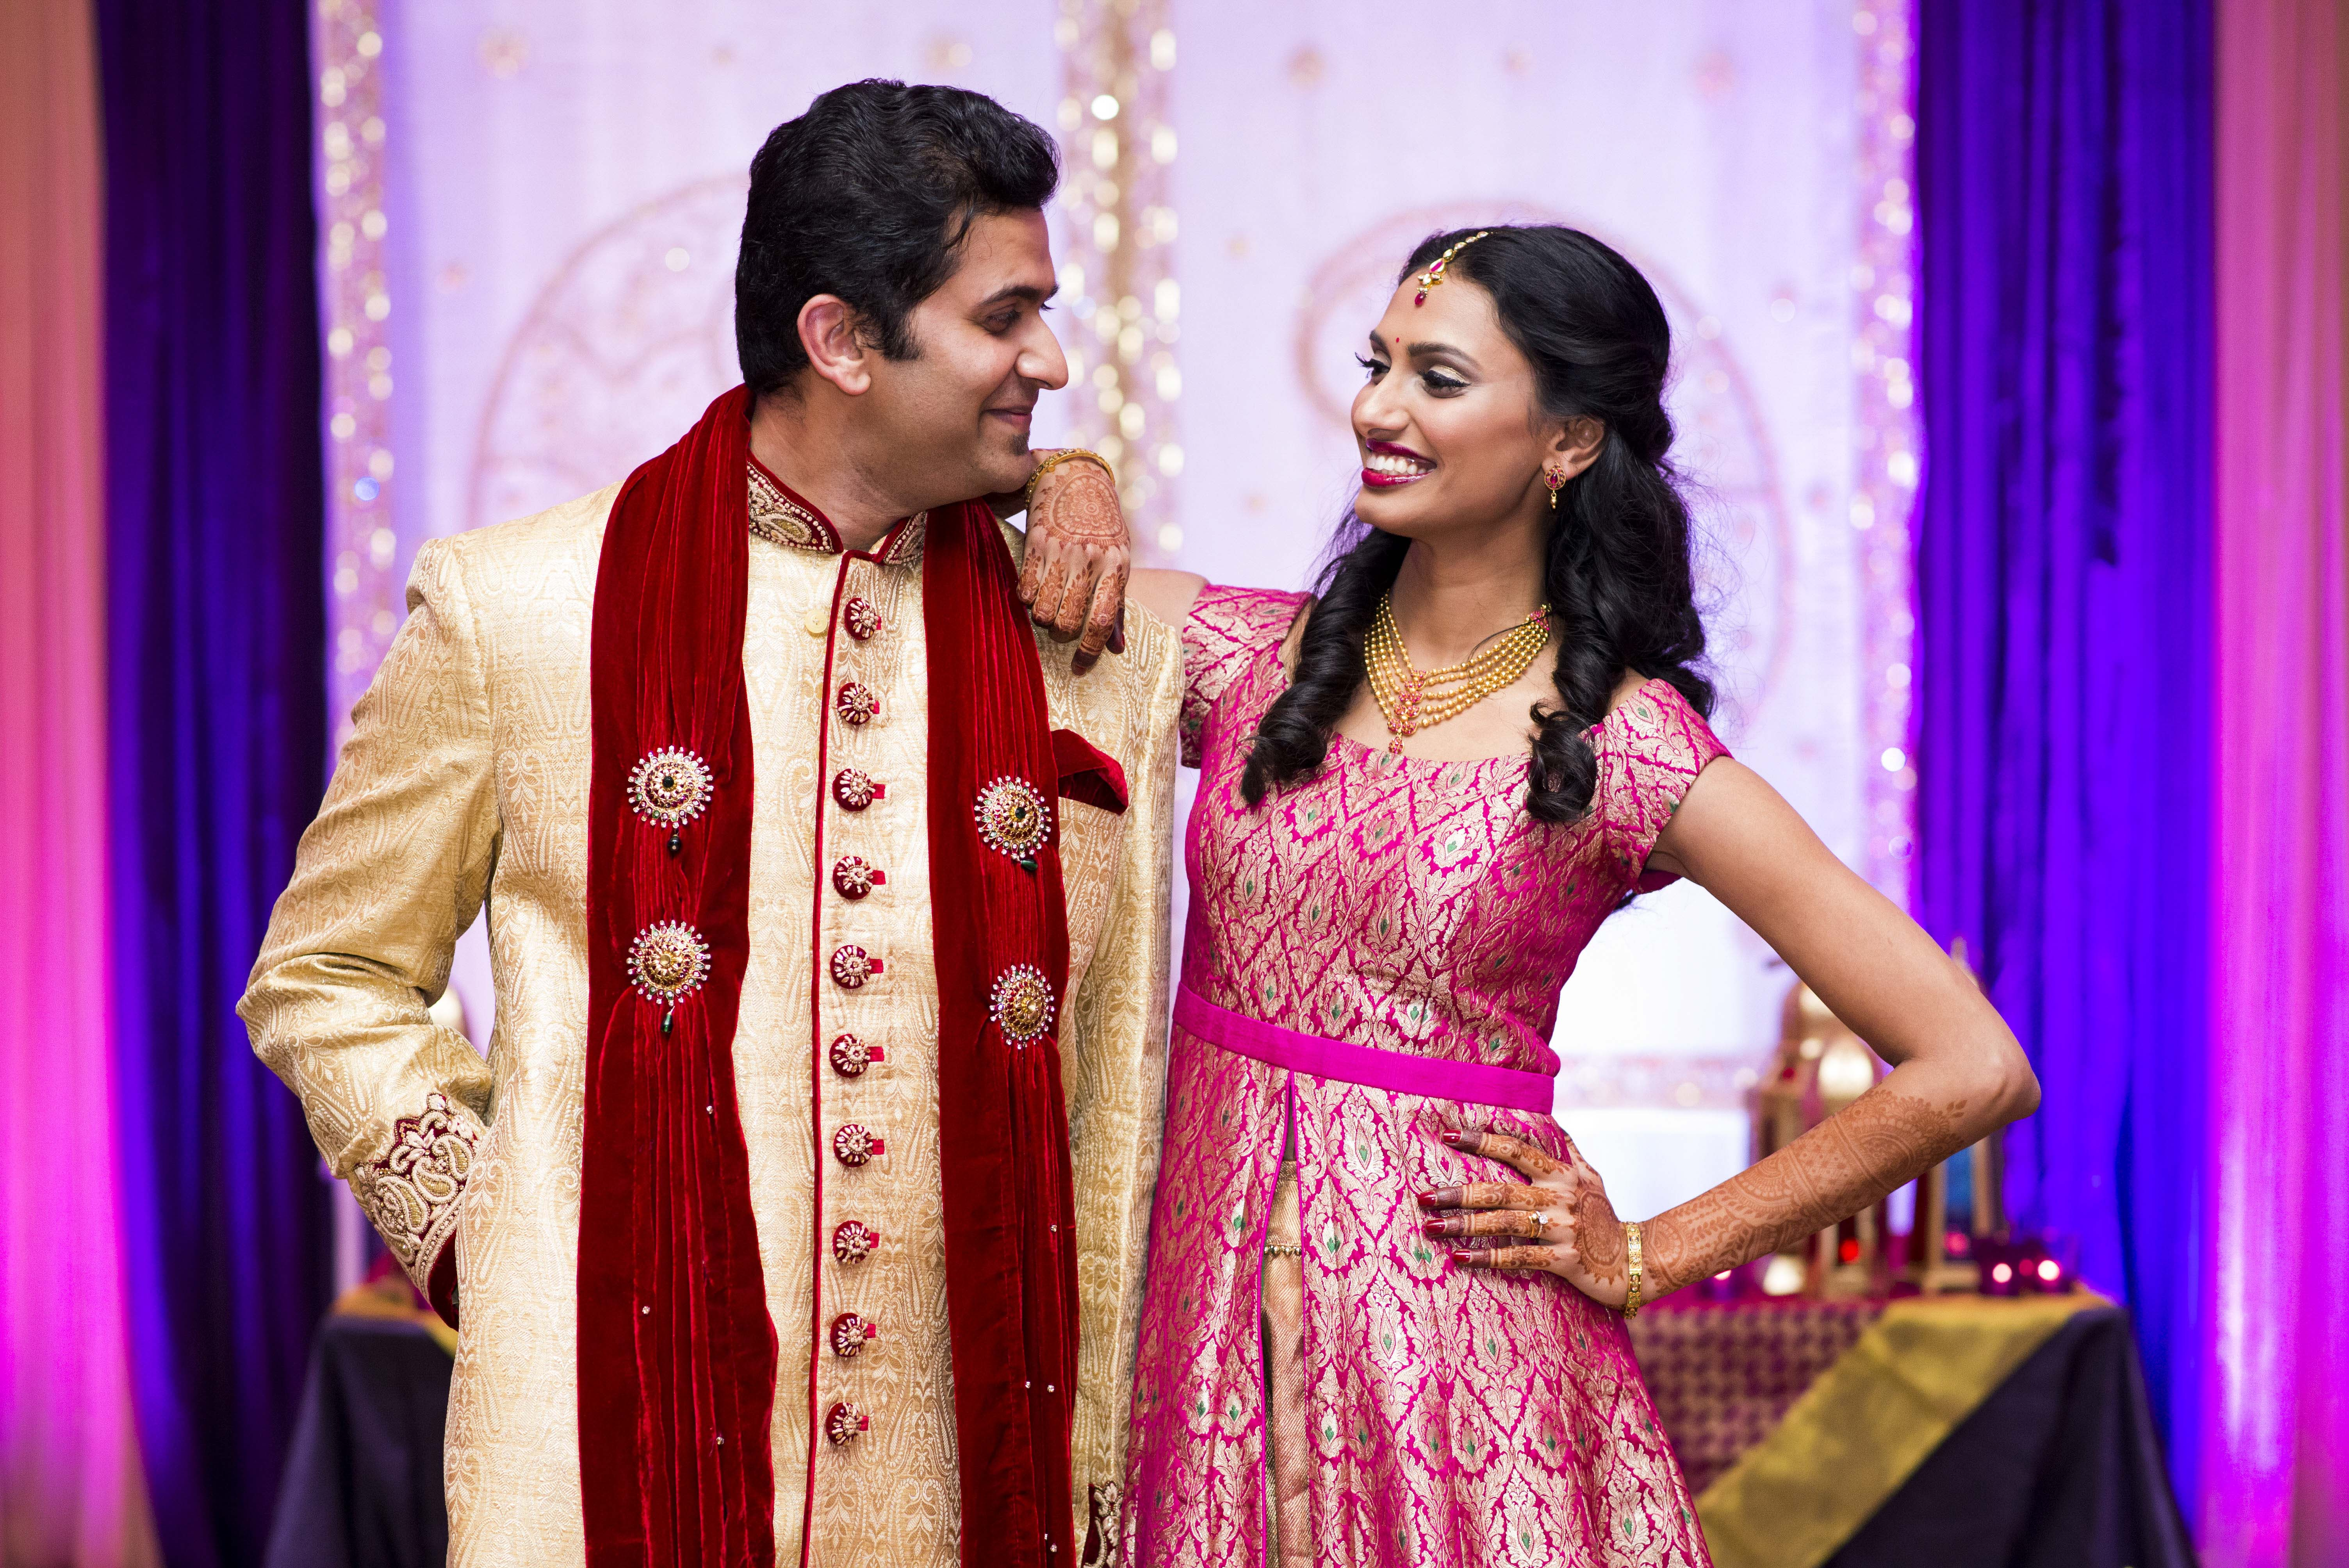 Dallas Indian Wedding Photographers 75 Picturesque Photo Video